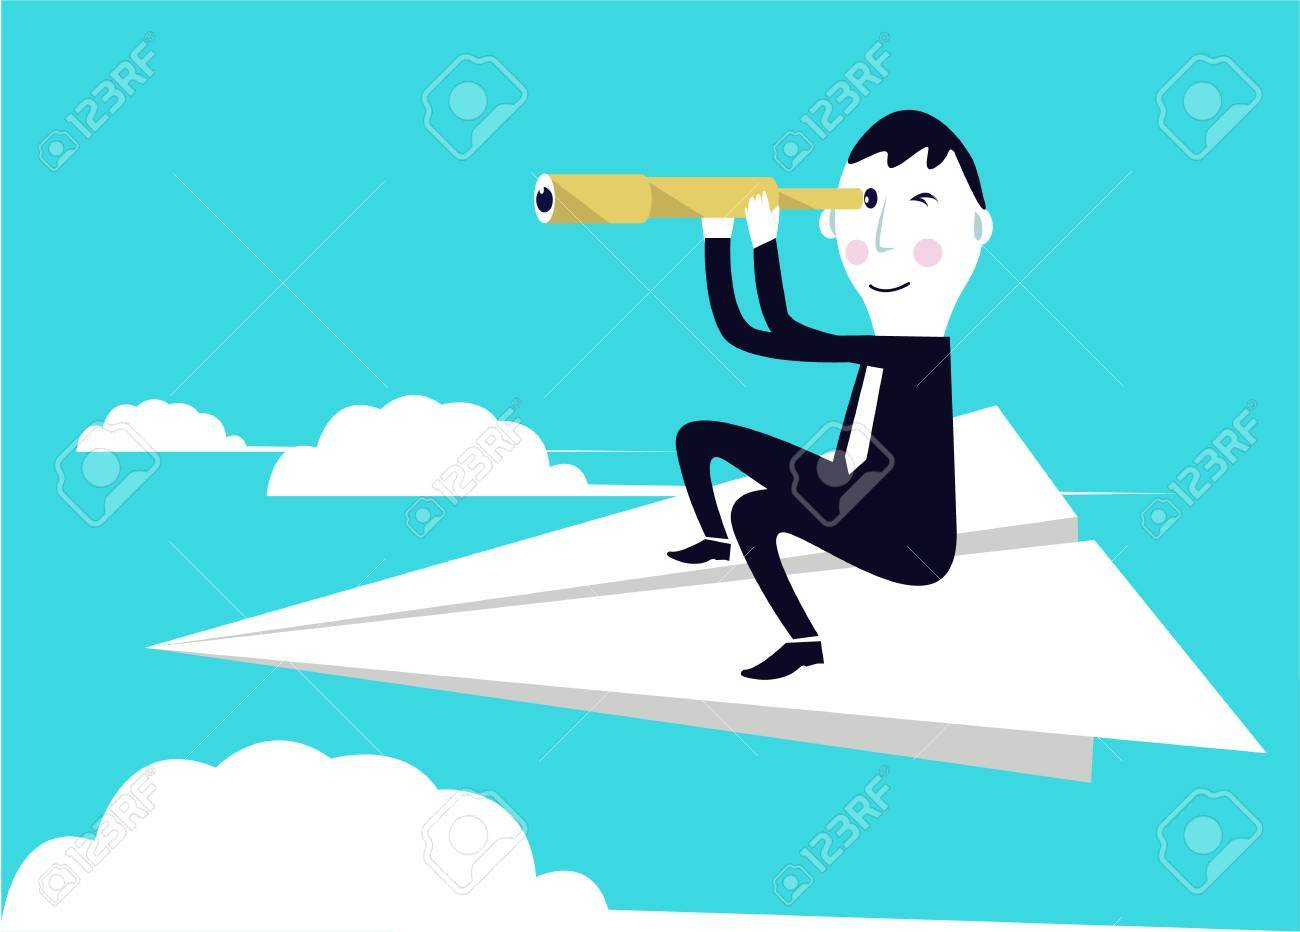 Businessman is seeking for an opportunity Stock Vector - 25517171